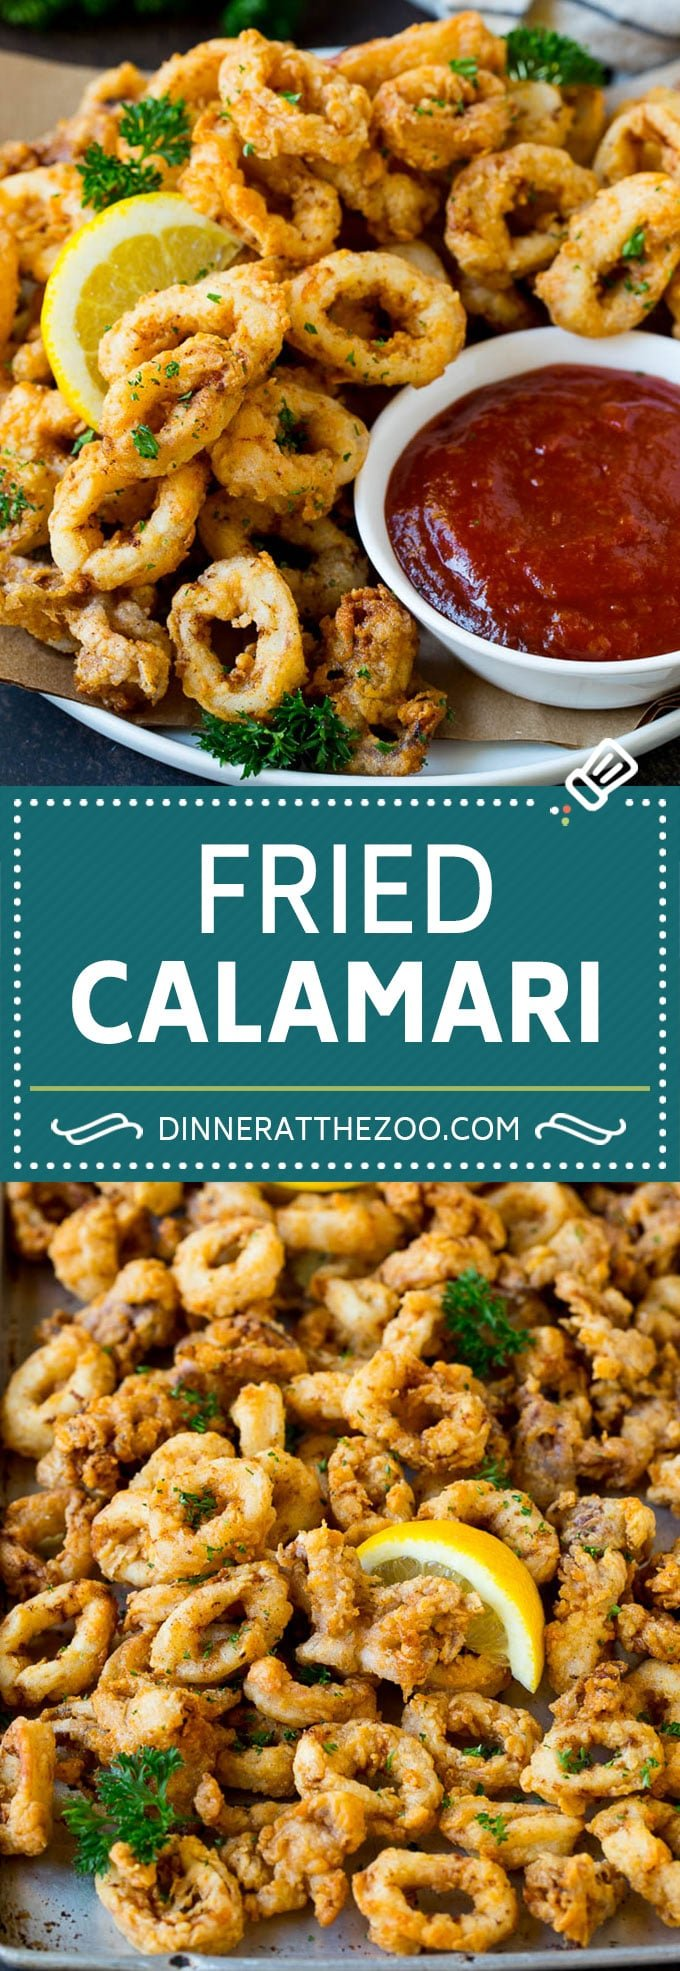 Fried Calamari Recipe #seafood #appetizer #dinner #dinneratthezoo